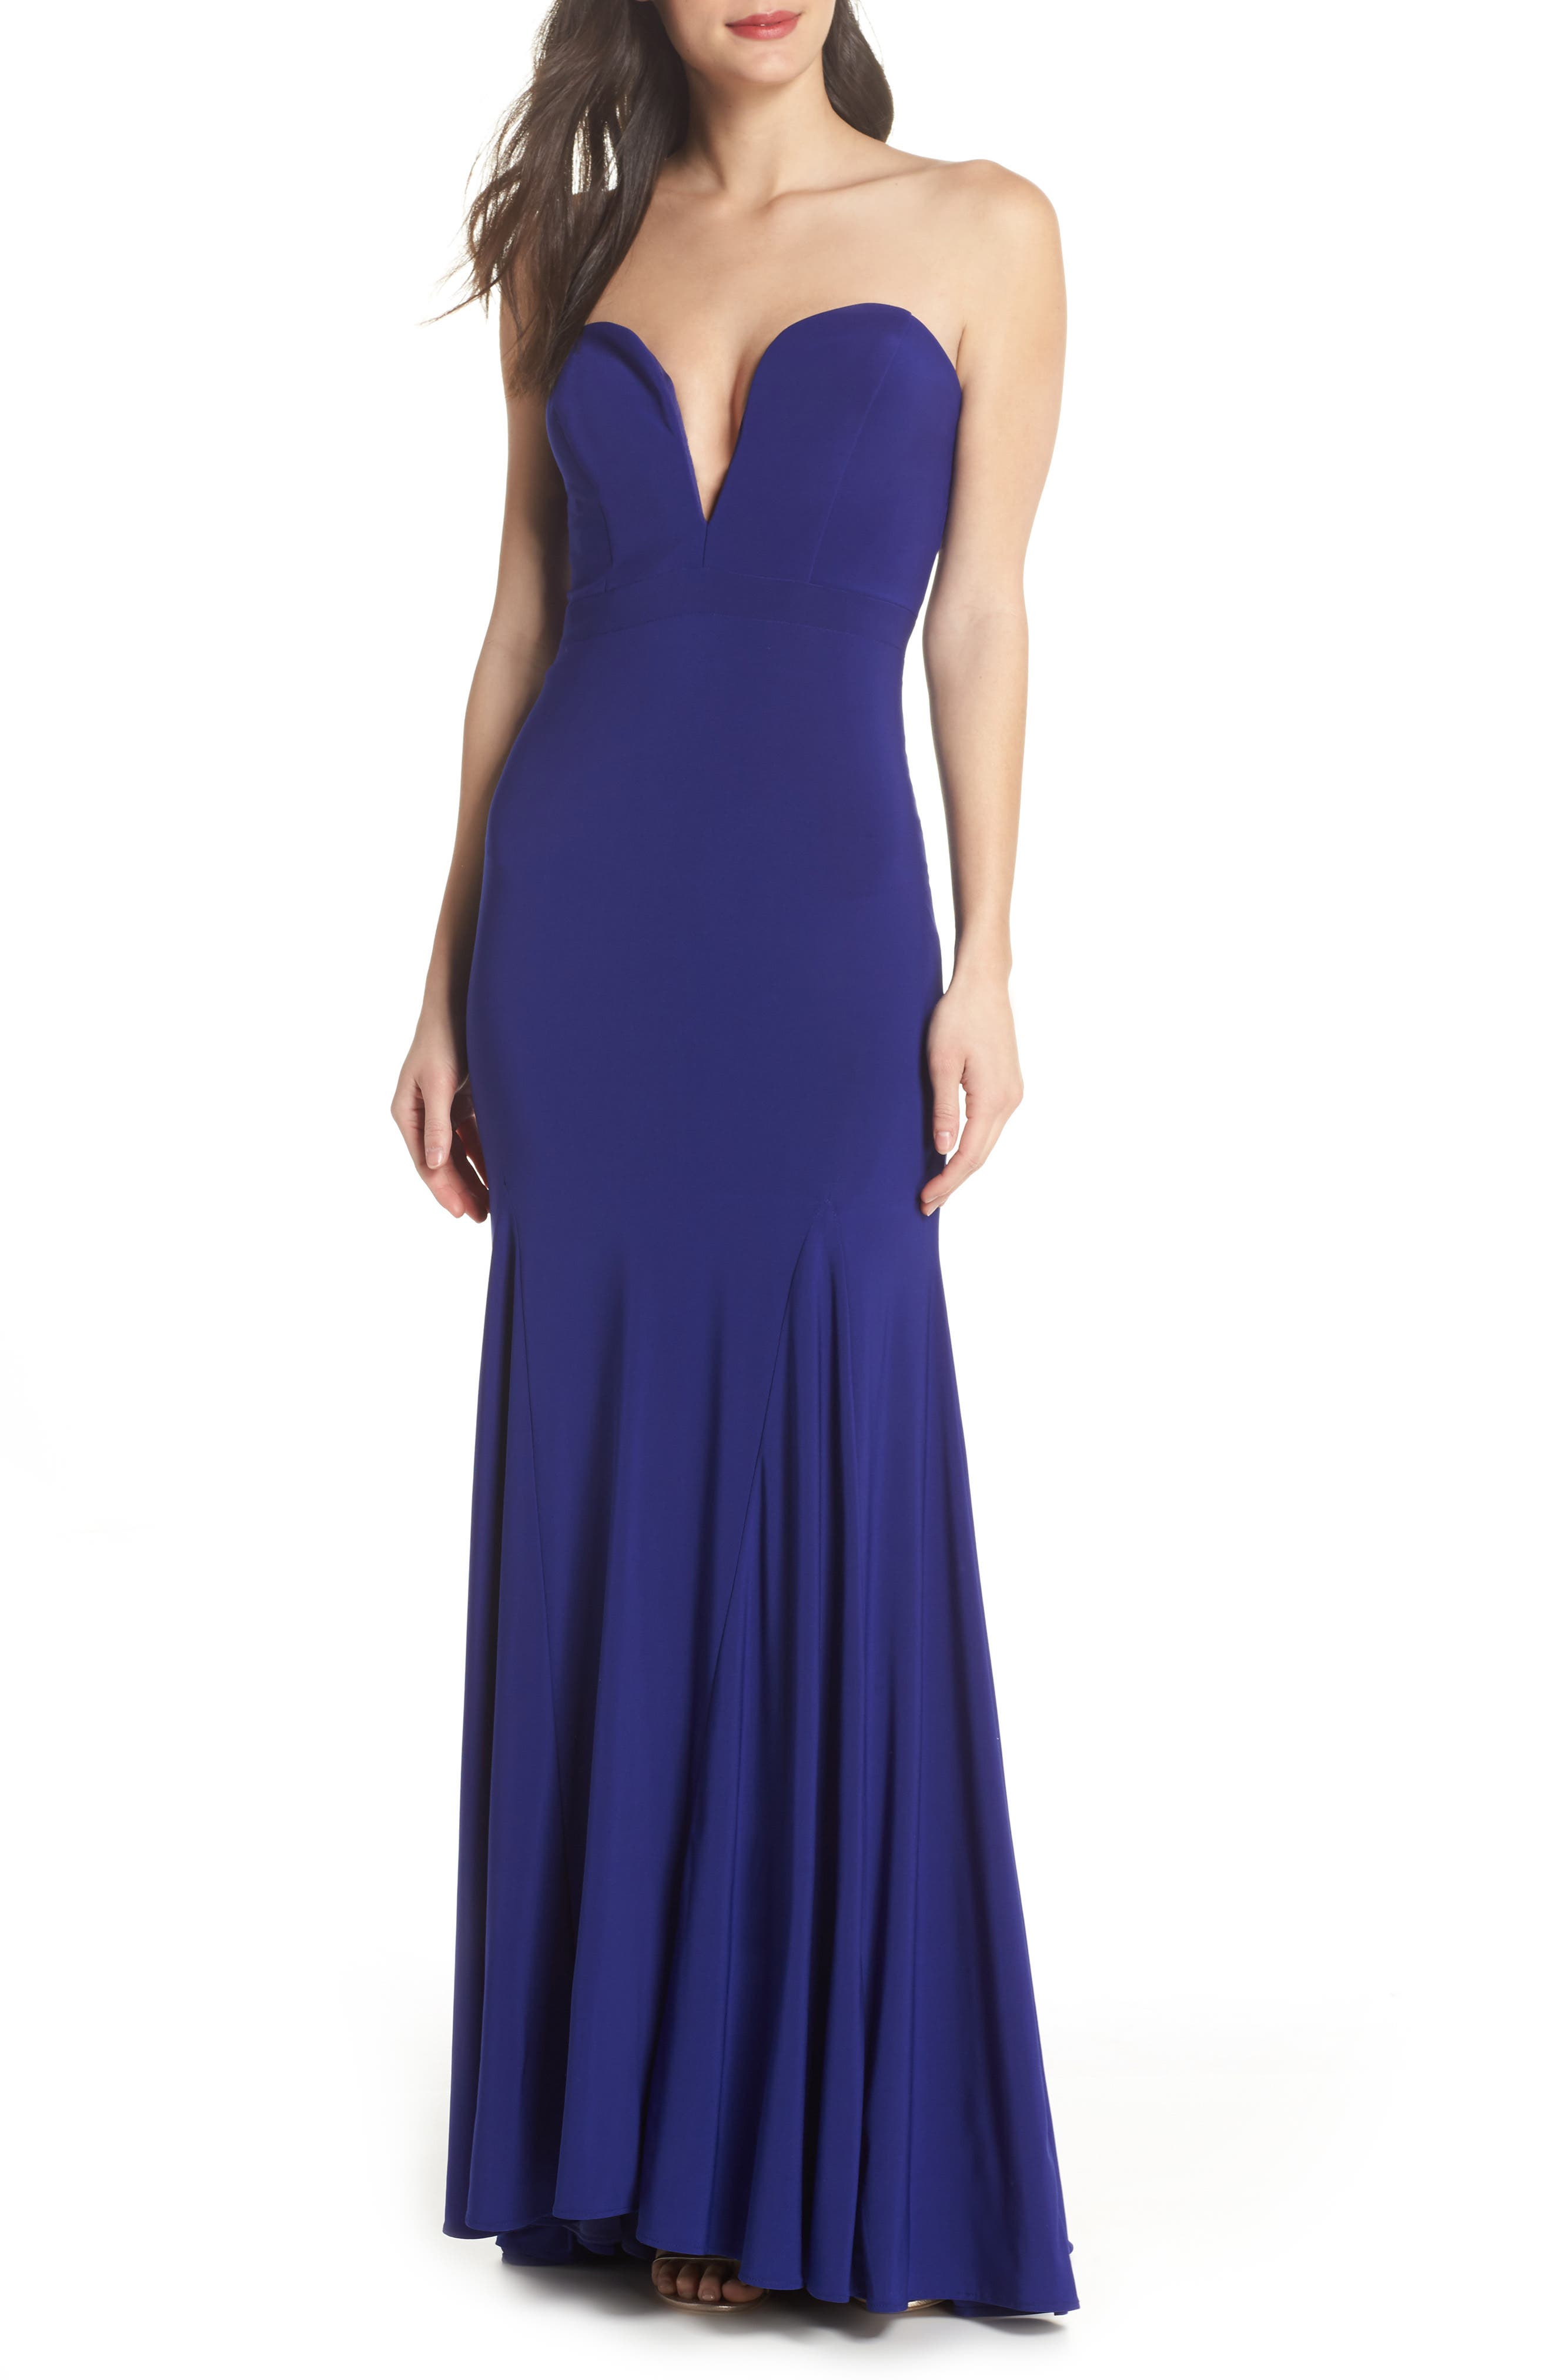 Bustier Strapless Gown,                         Main,                         color, Electric Blue